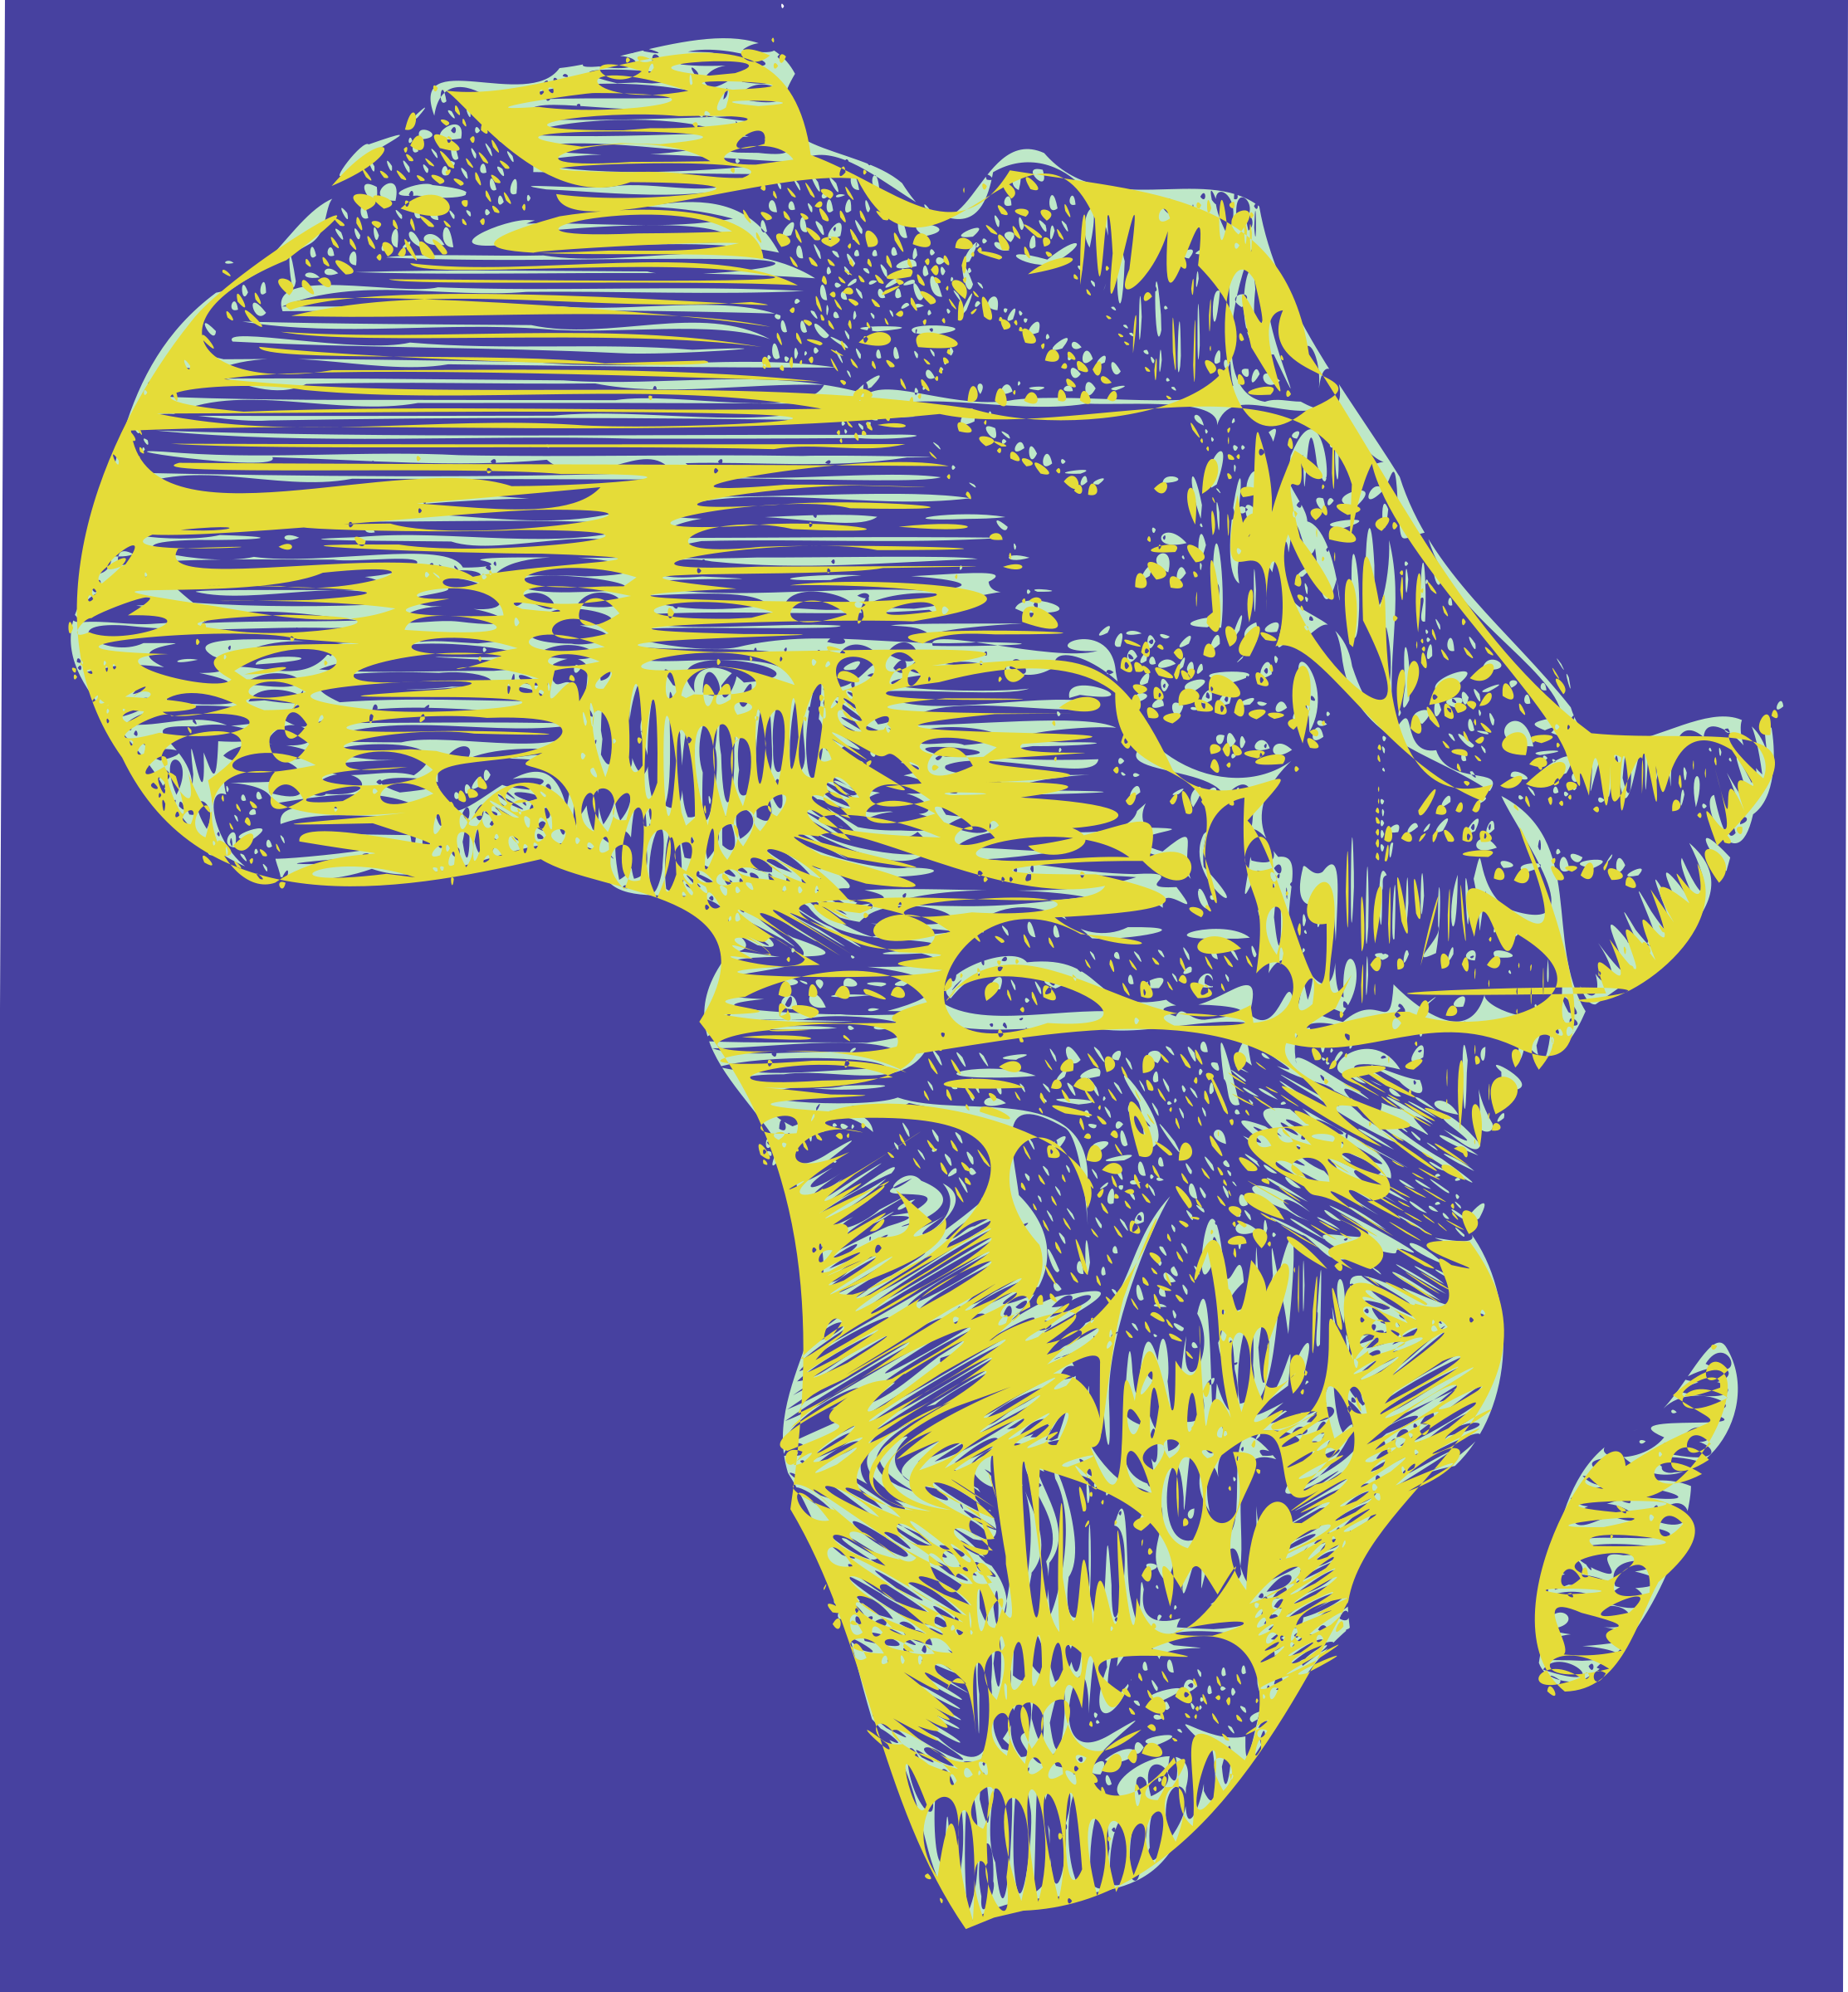 Abstract Africa by j4p4n